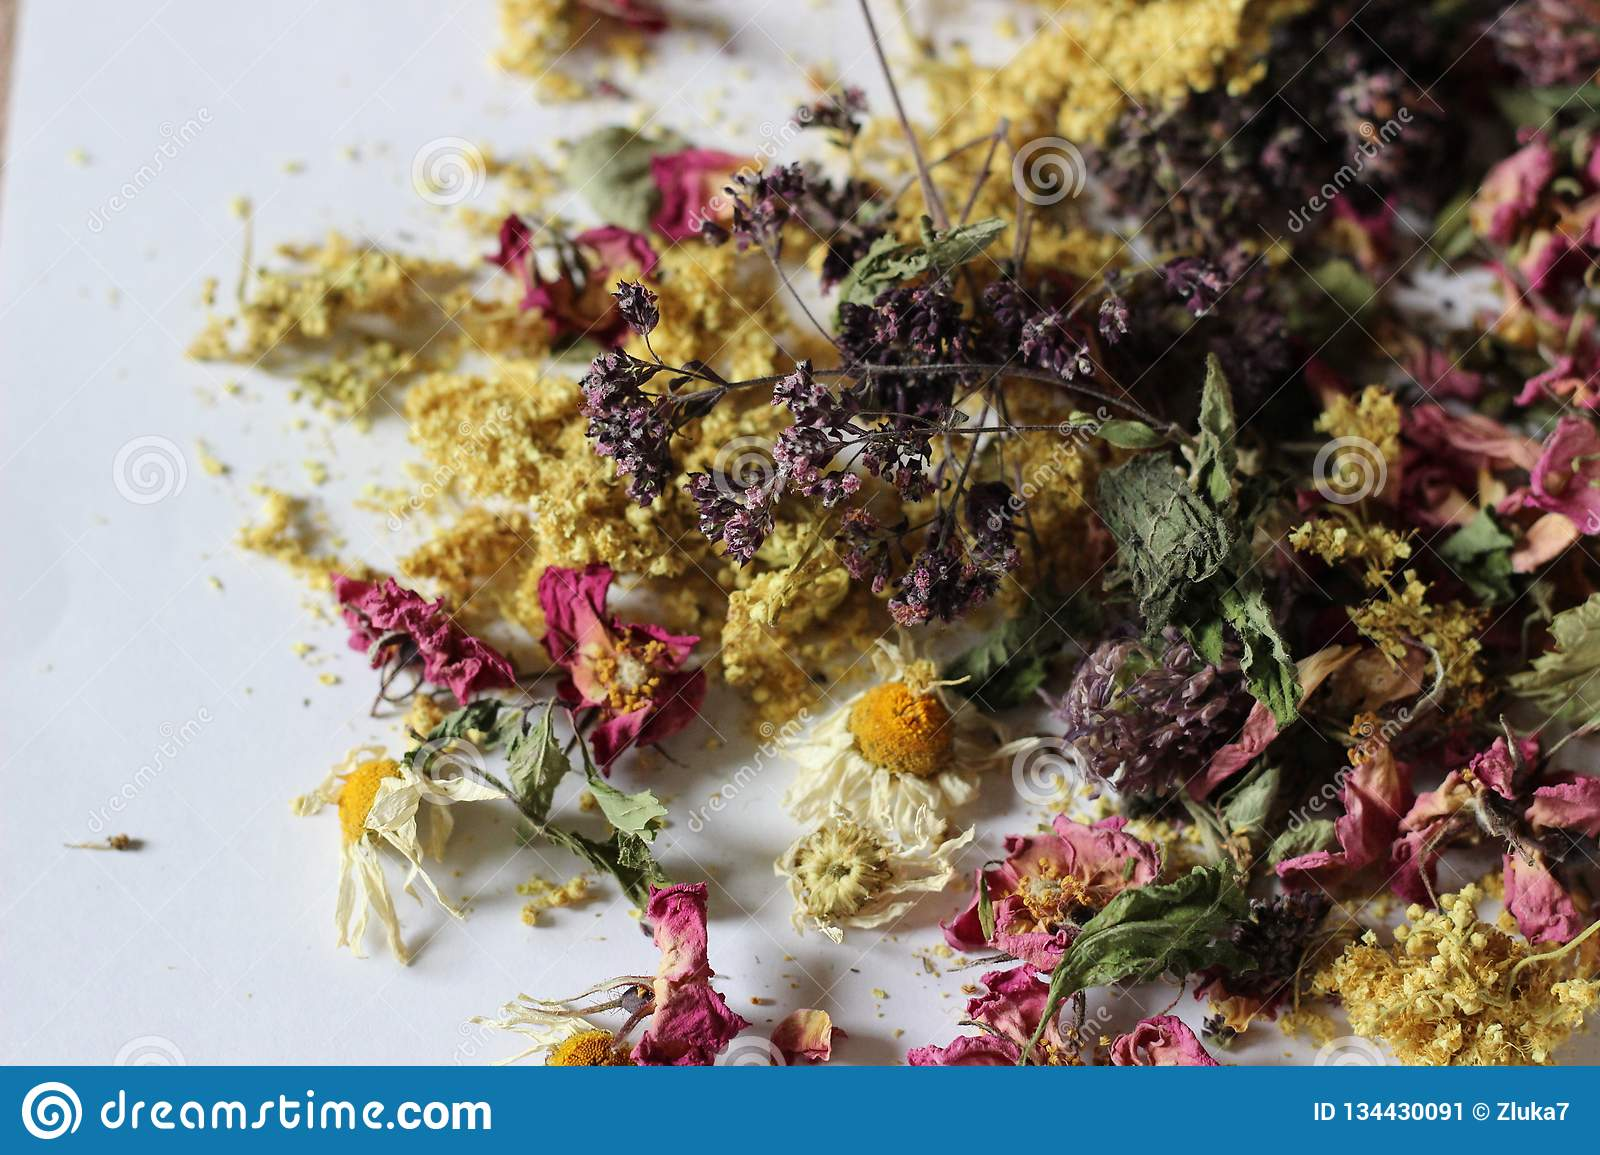 Dried flowers for aromatic tea